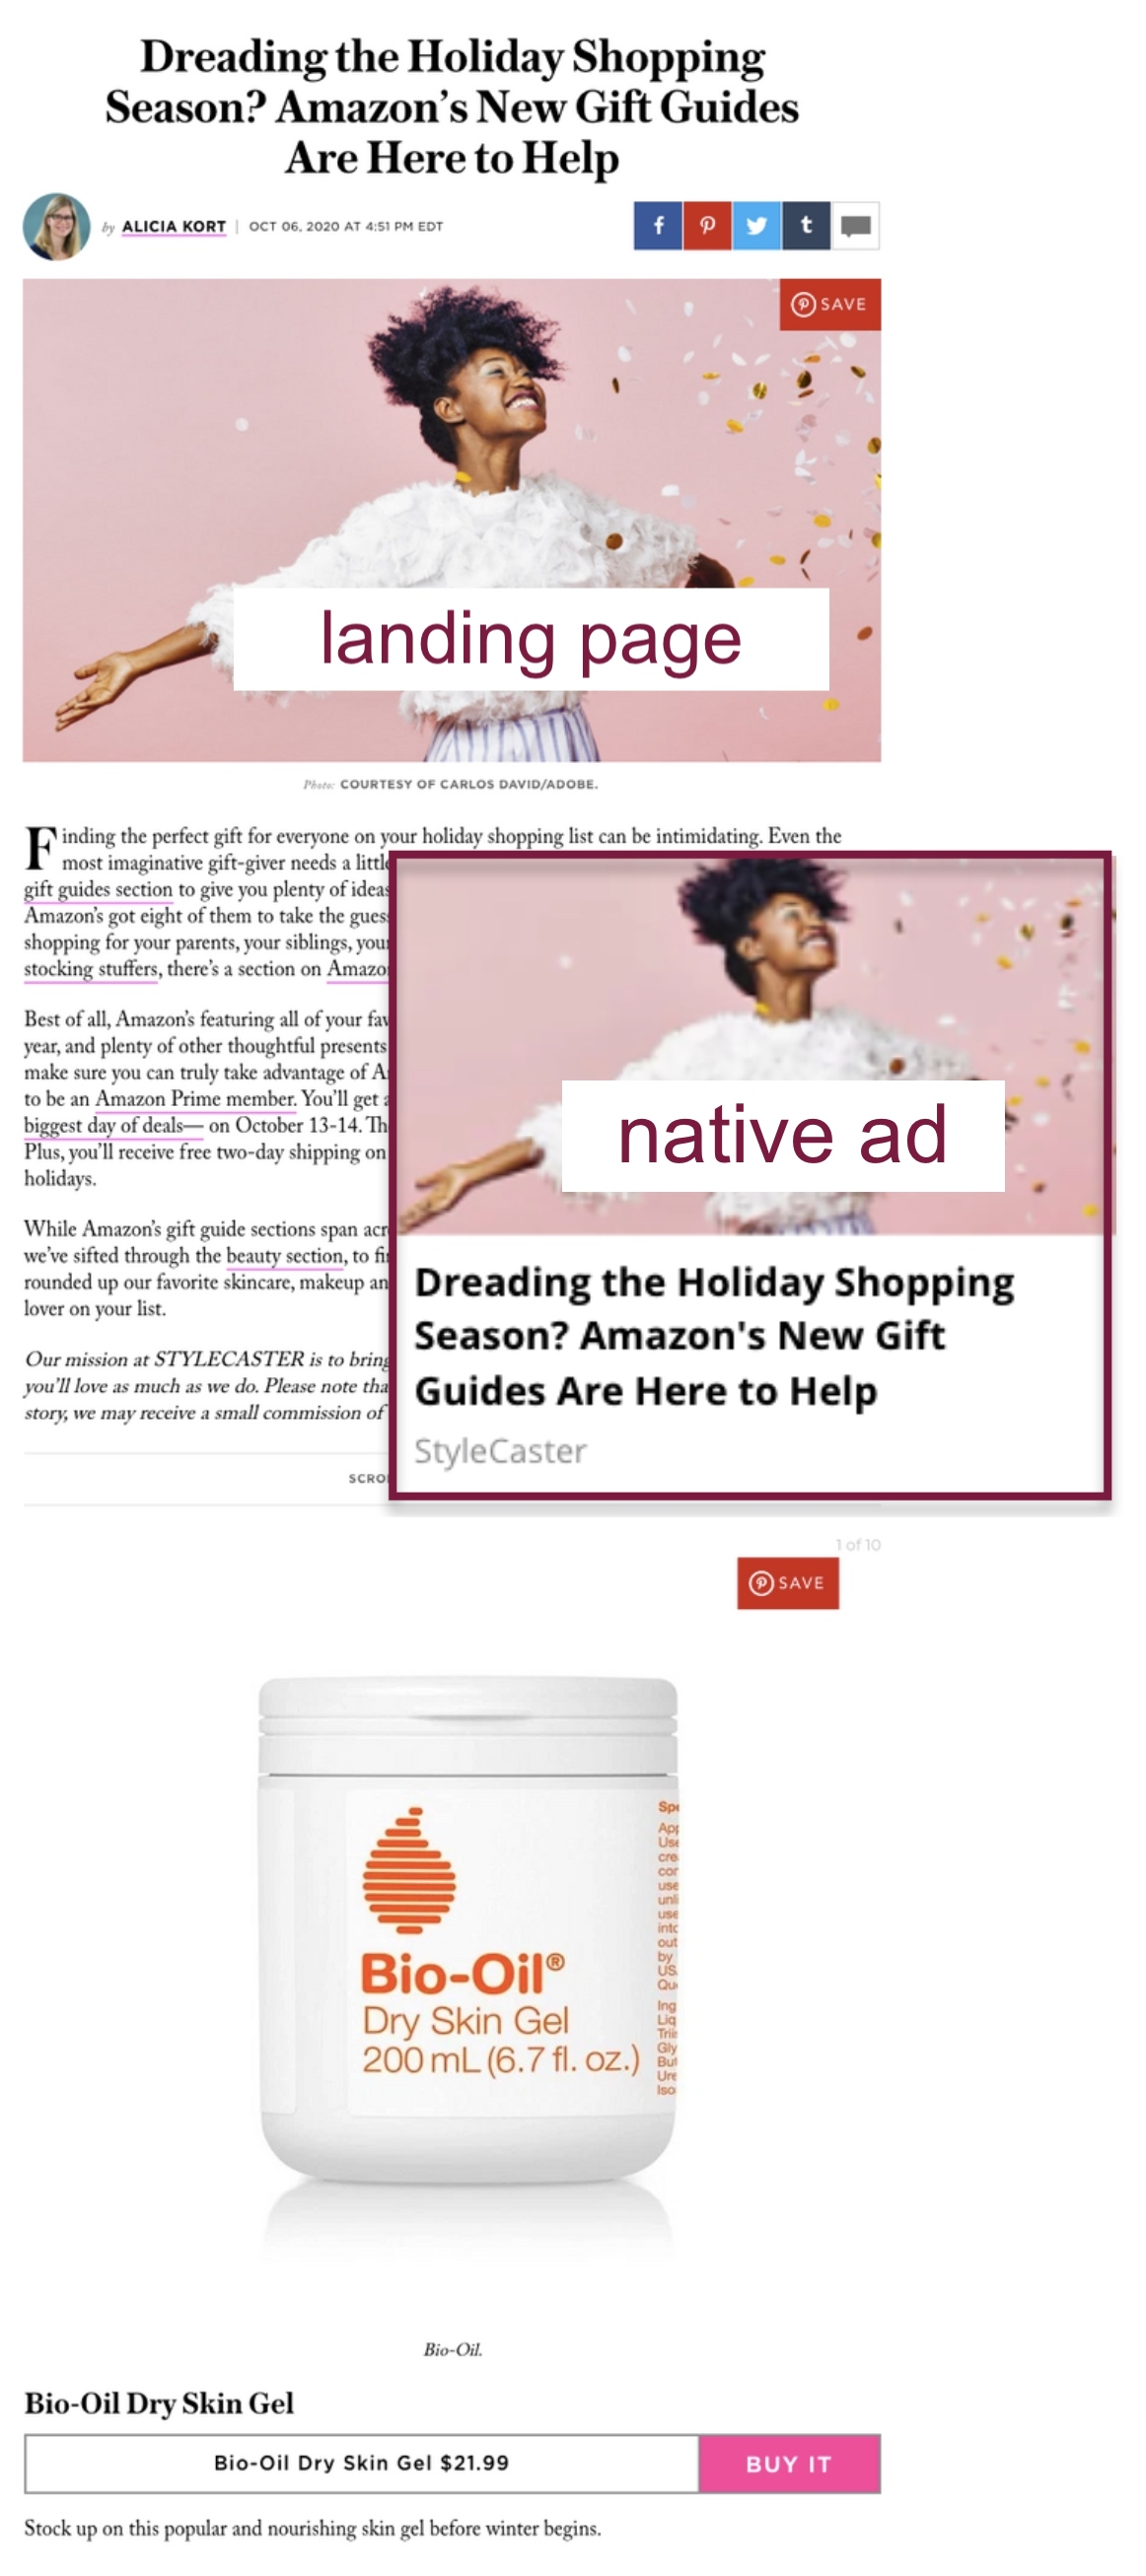 StyleCaster native ad example